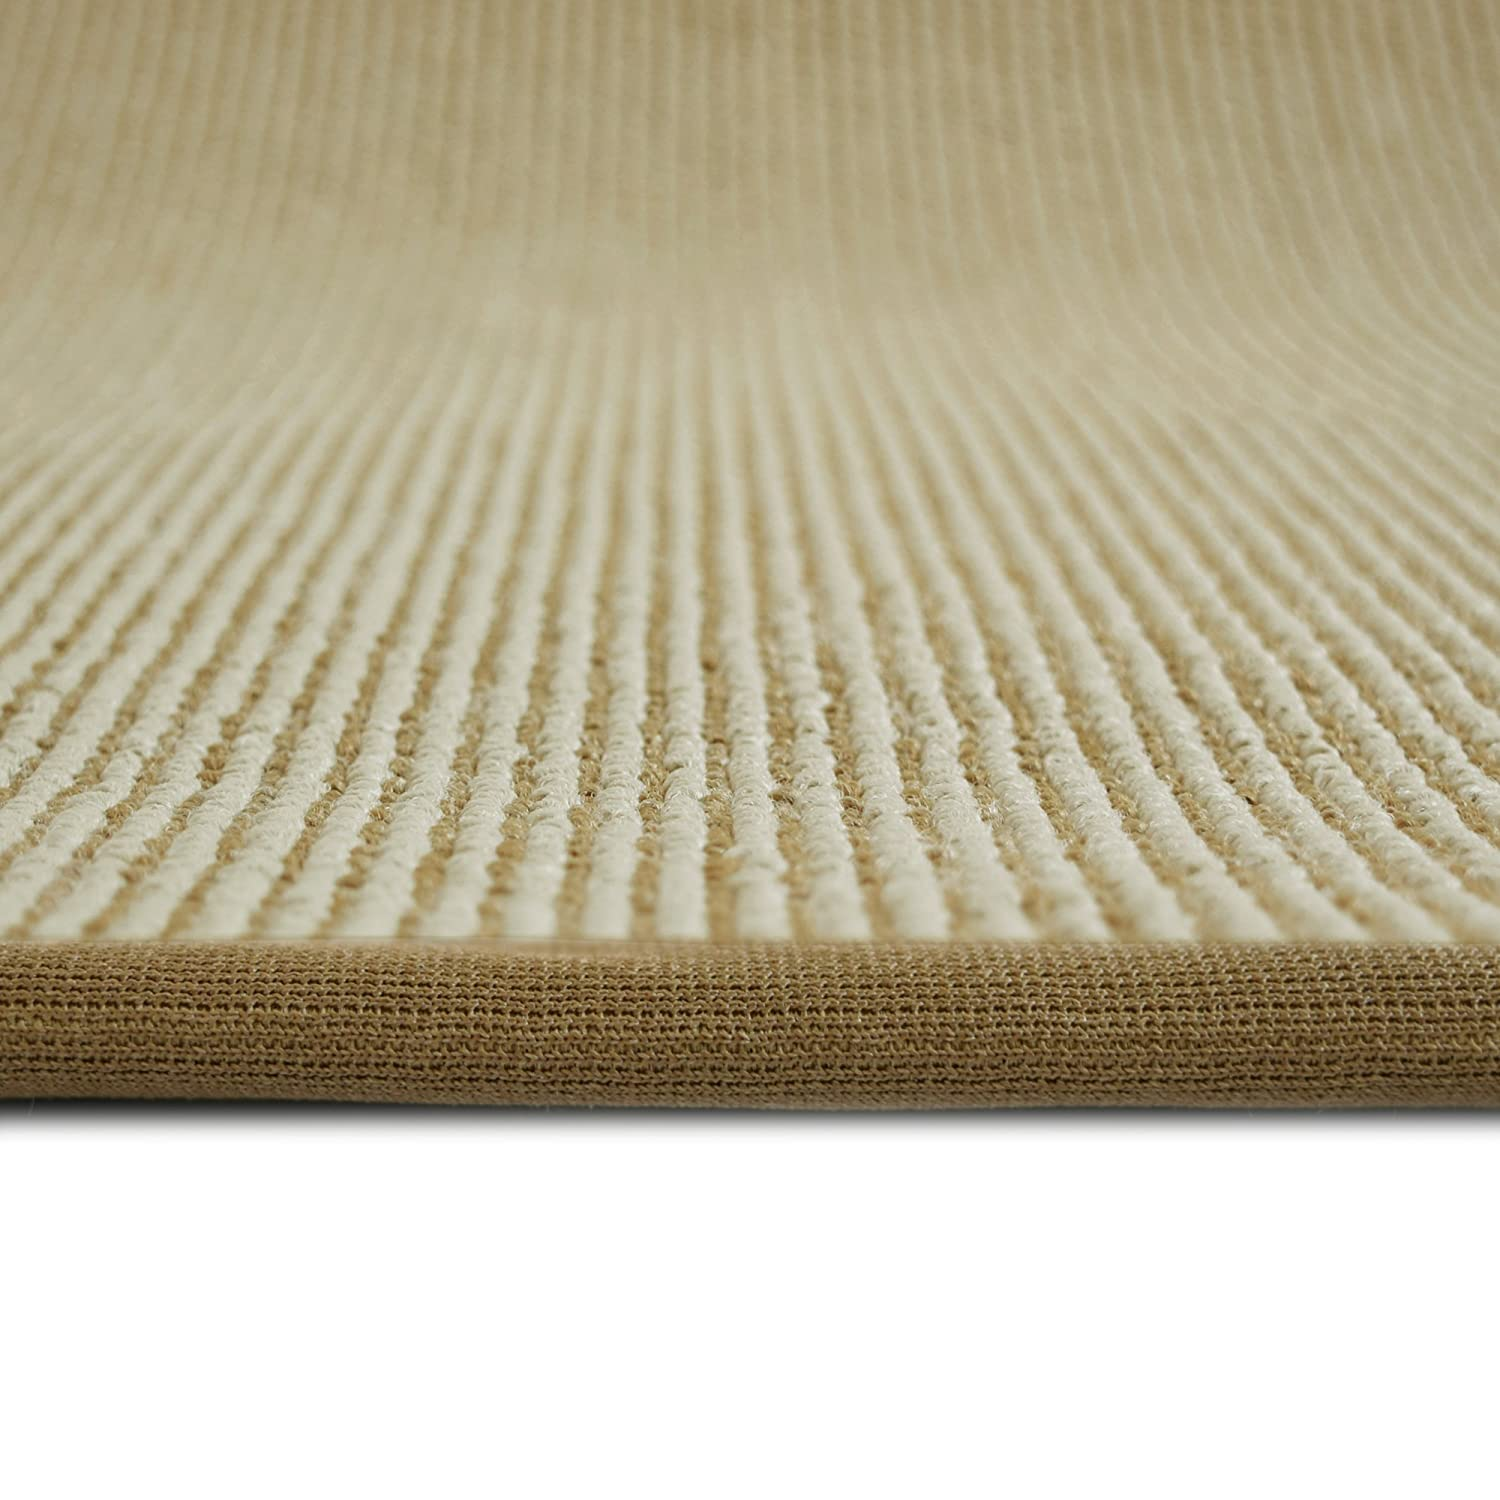 Amazon ICustomRug Zara Contemporary Synthetic Sisal Rug Softer Than Natural Stain Resistant Easy To Clean Beautiful Border In Gold